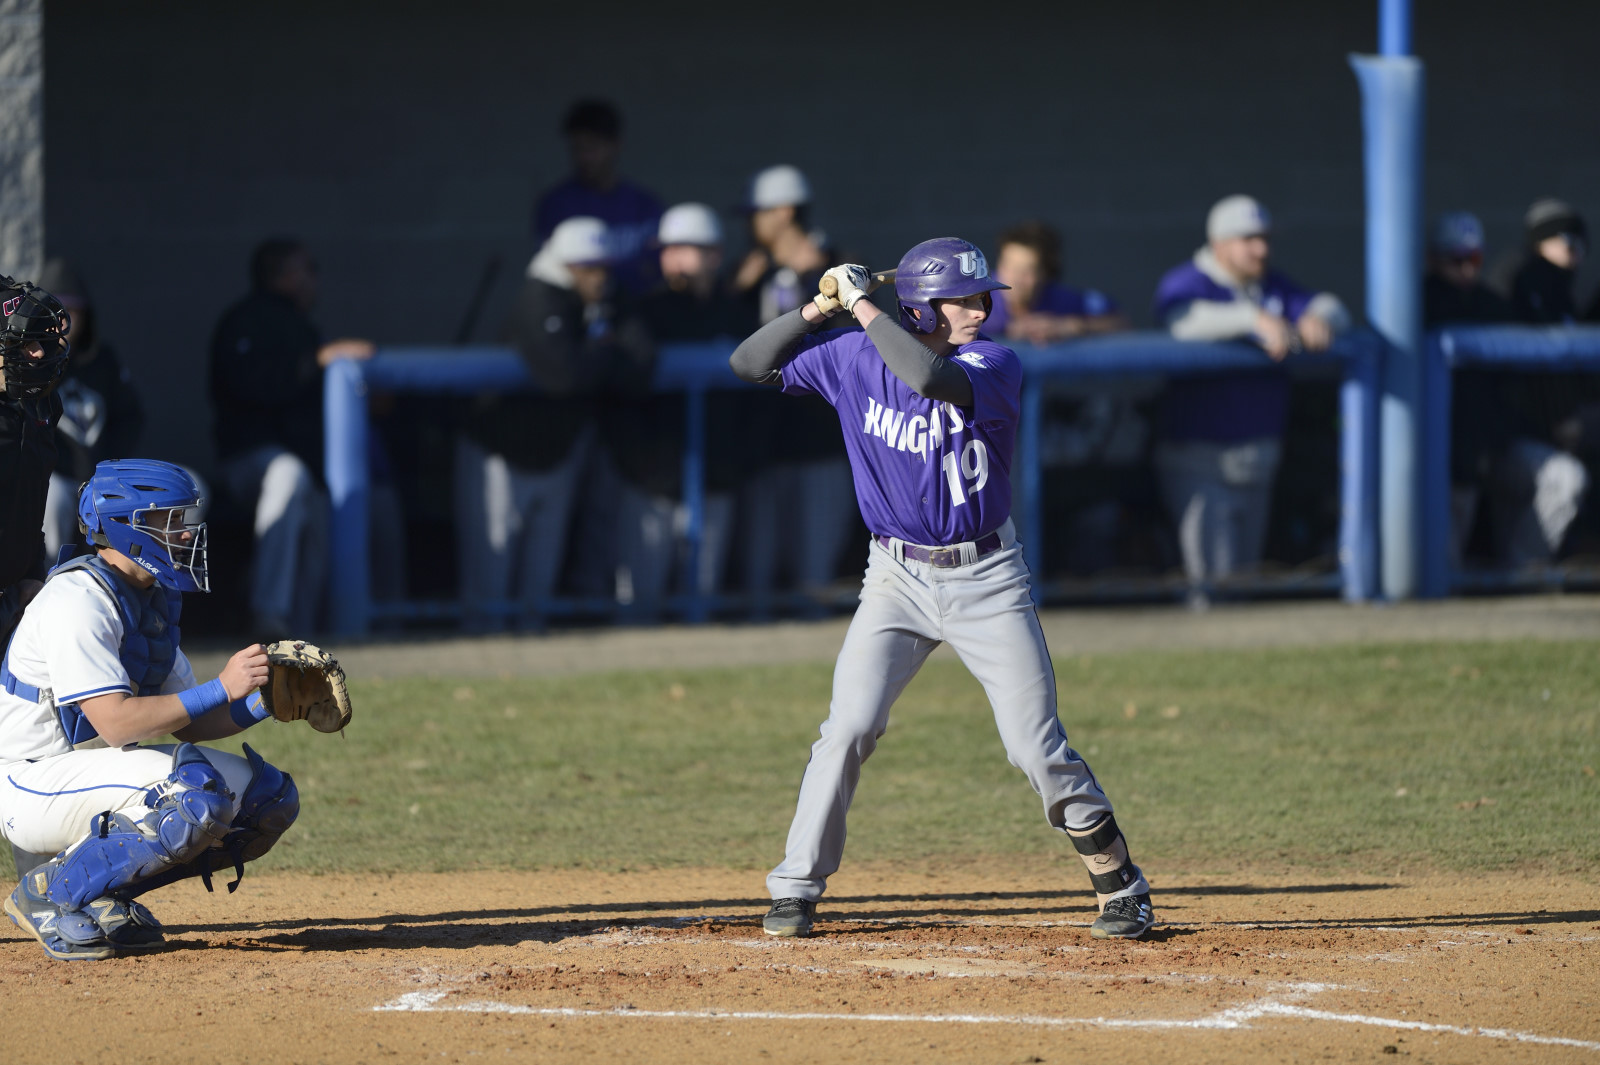 UB Baseball Finally Plays In The Park City City But Falls To St. Thomas Aquinas